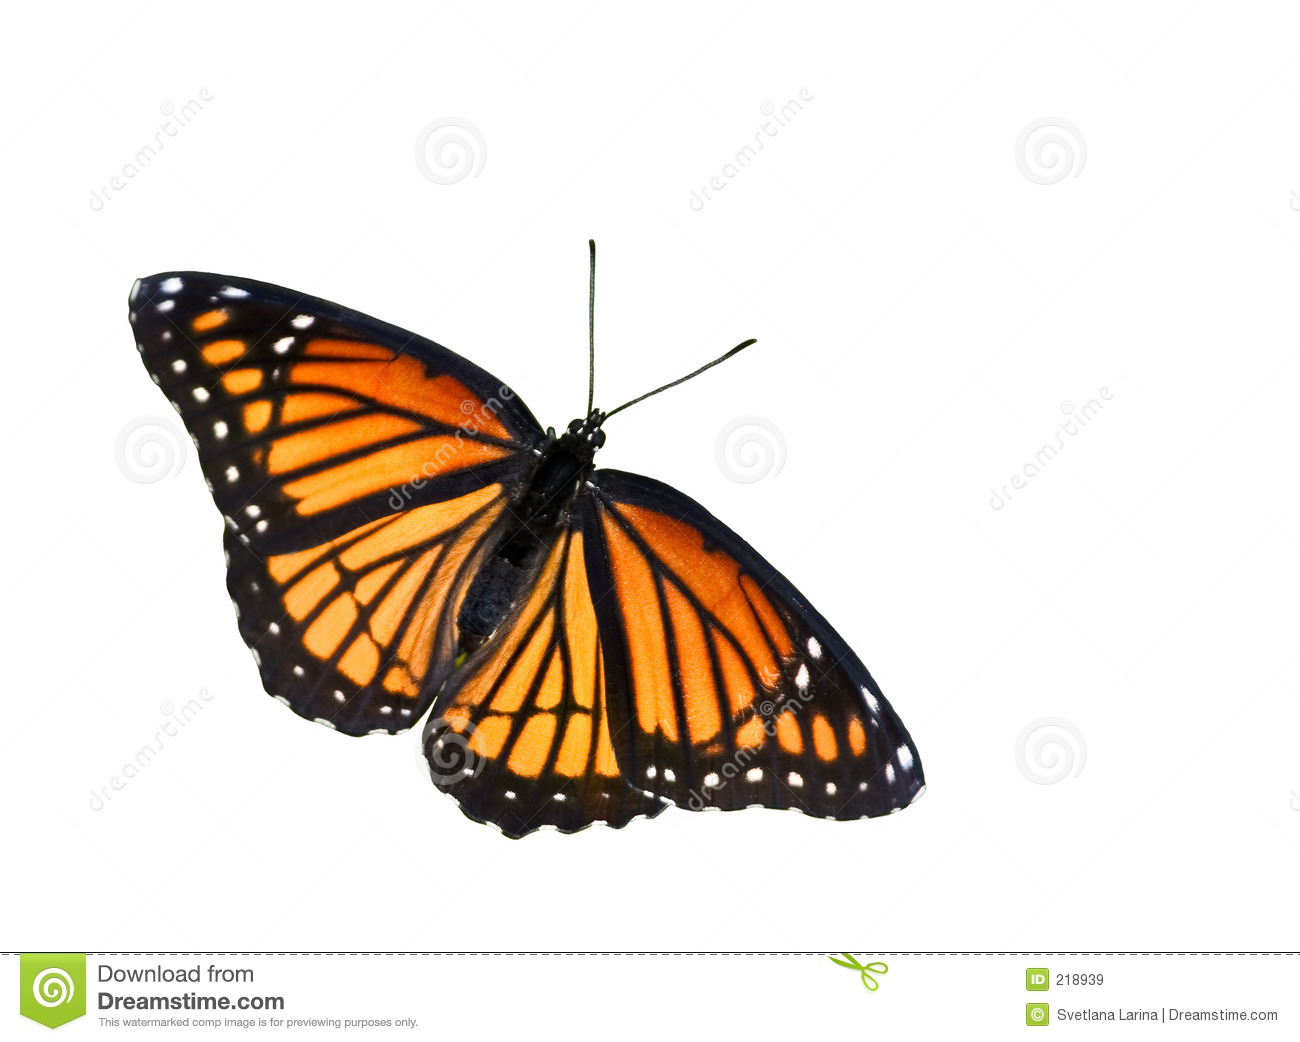 100 Monarch Design The Monarch Modernspaces Nyc  : monarch butterfly 218939 from 45.76.23.192 size 1300 x 1042 jpeg 196kB